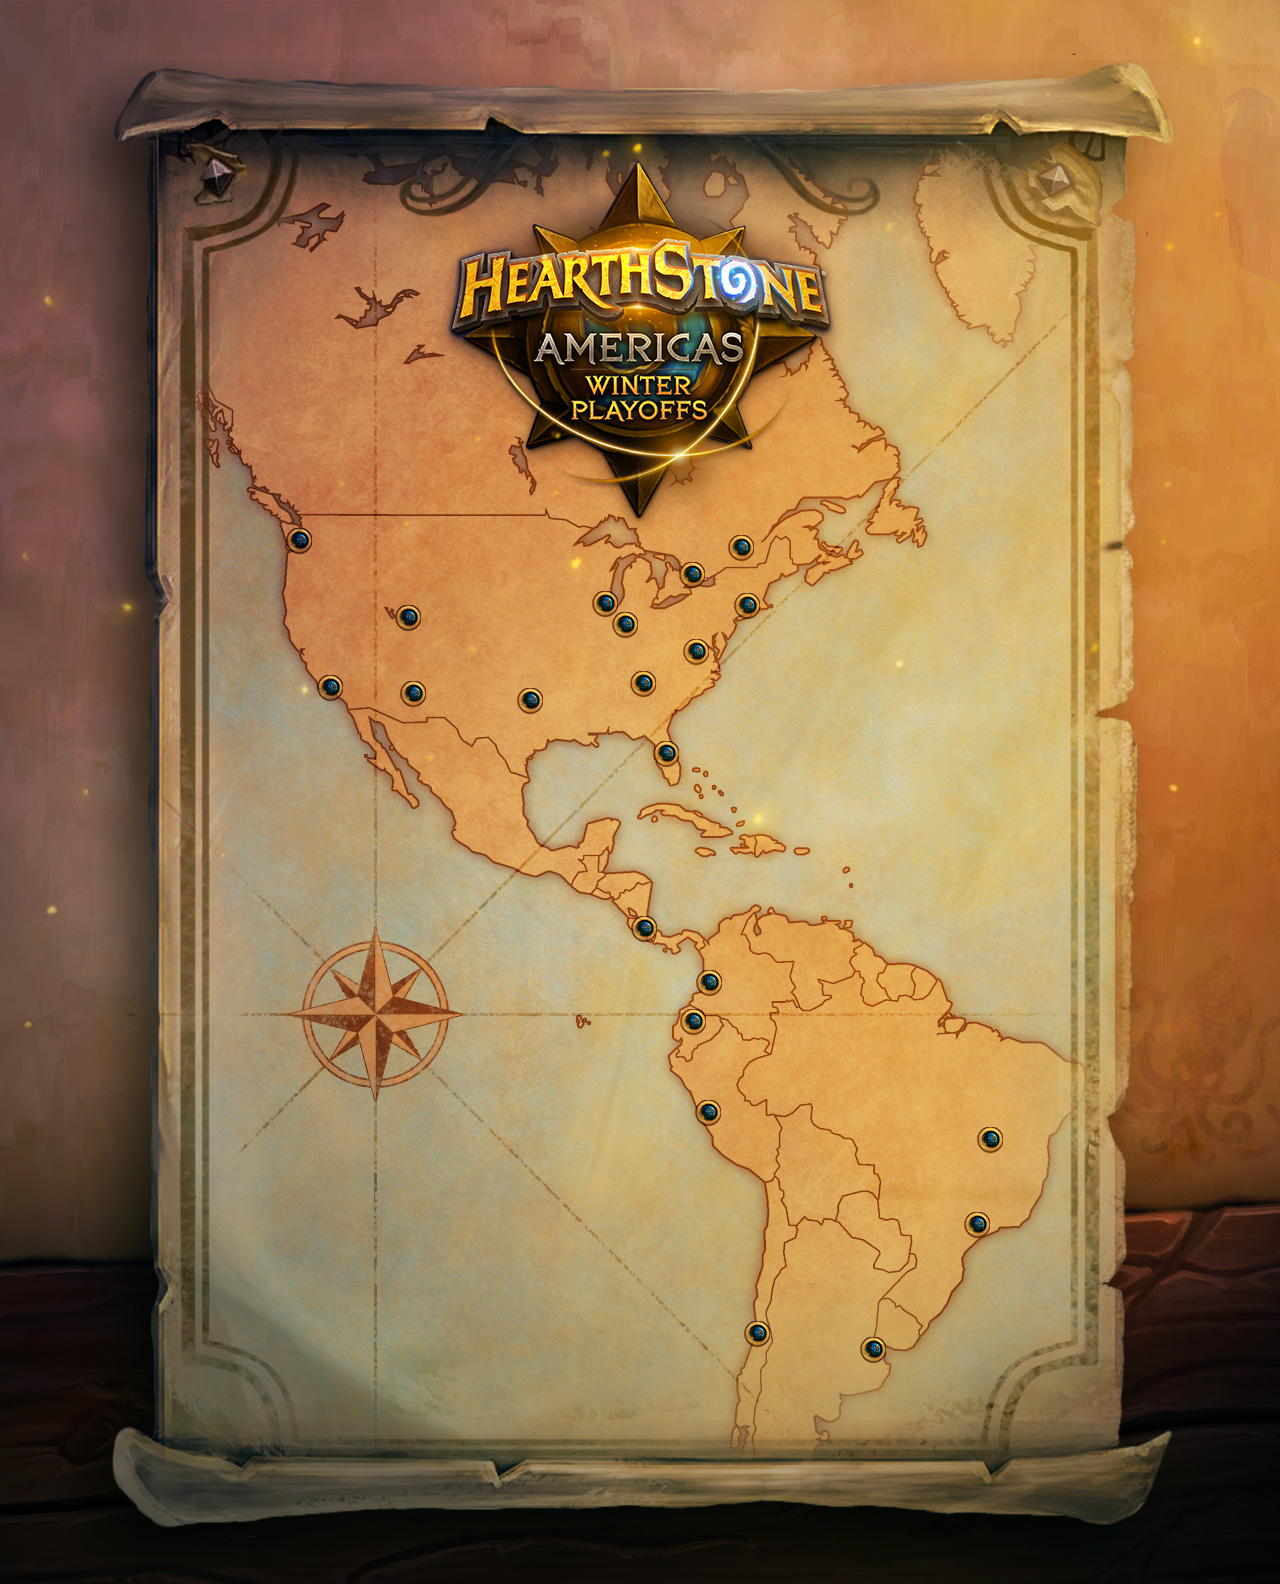 Americas HCT Winter Playoffs 2017 - Venue Locations